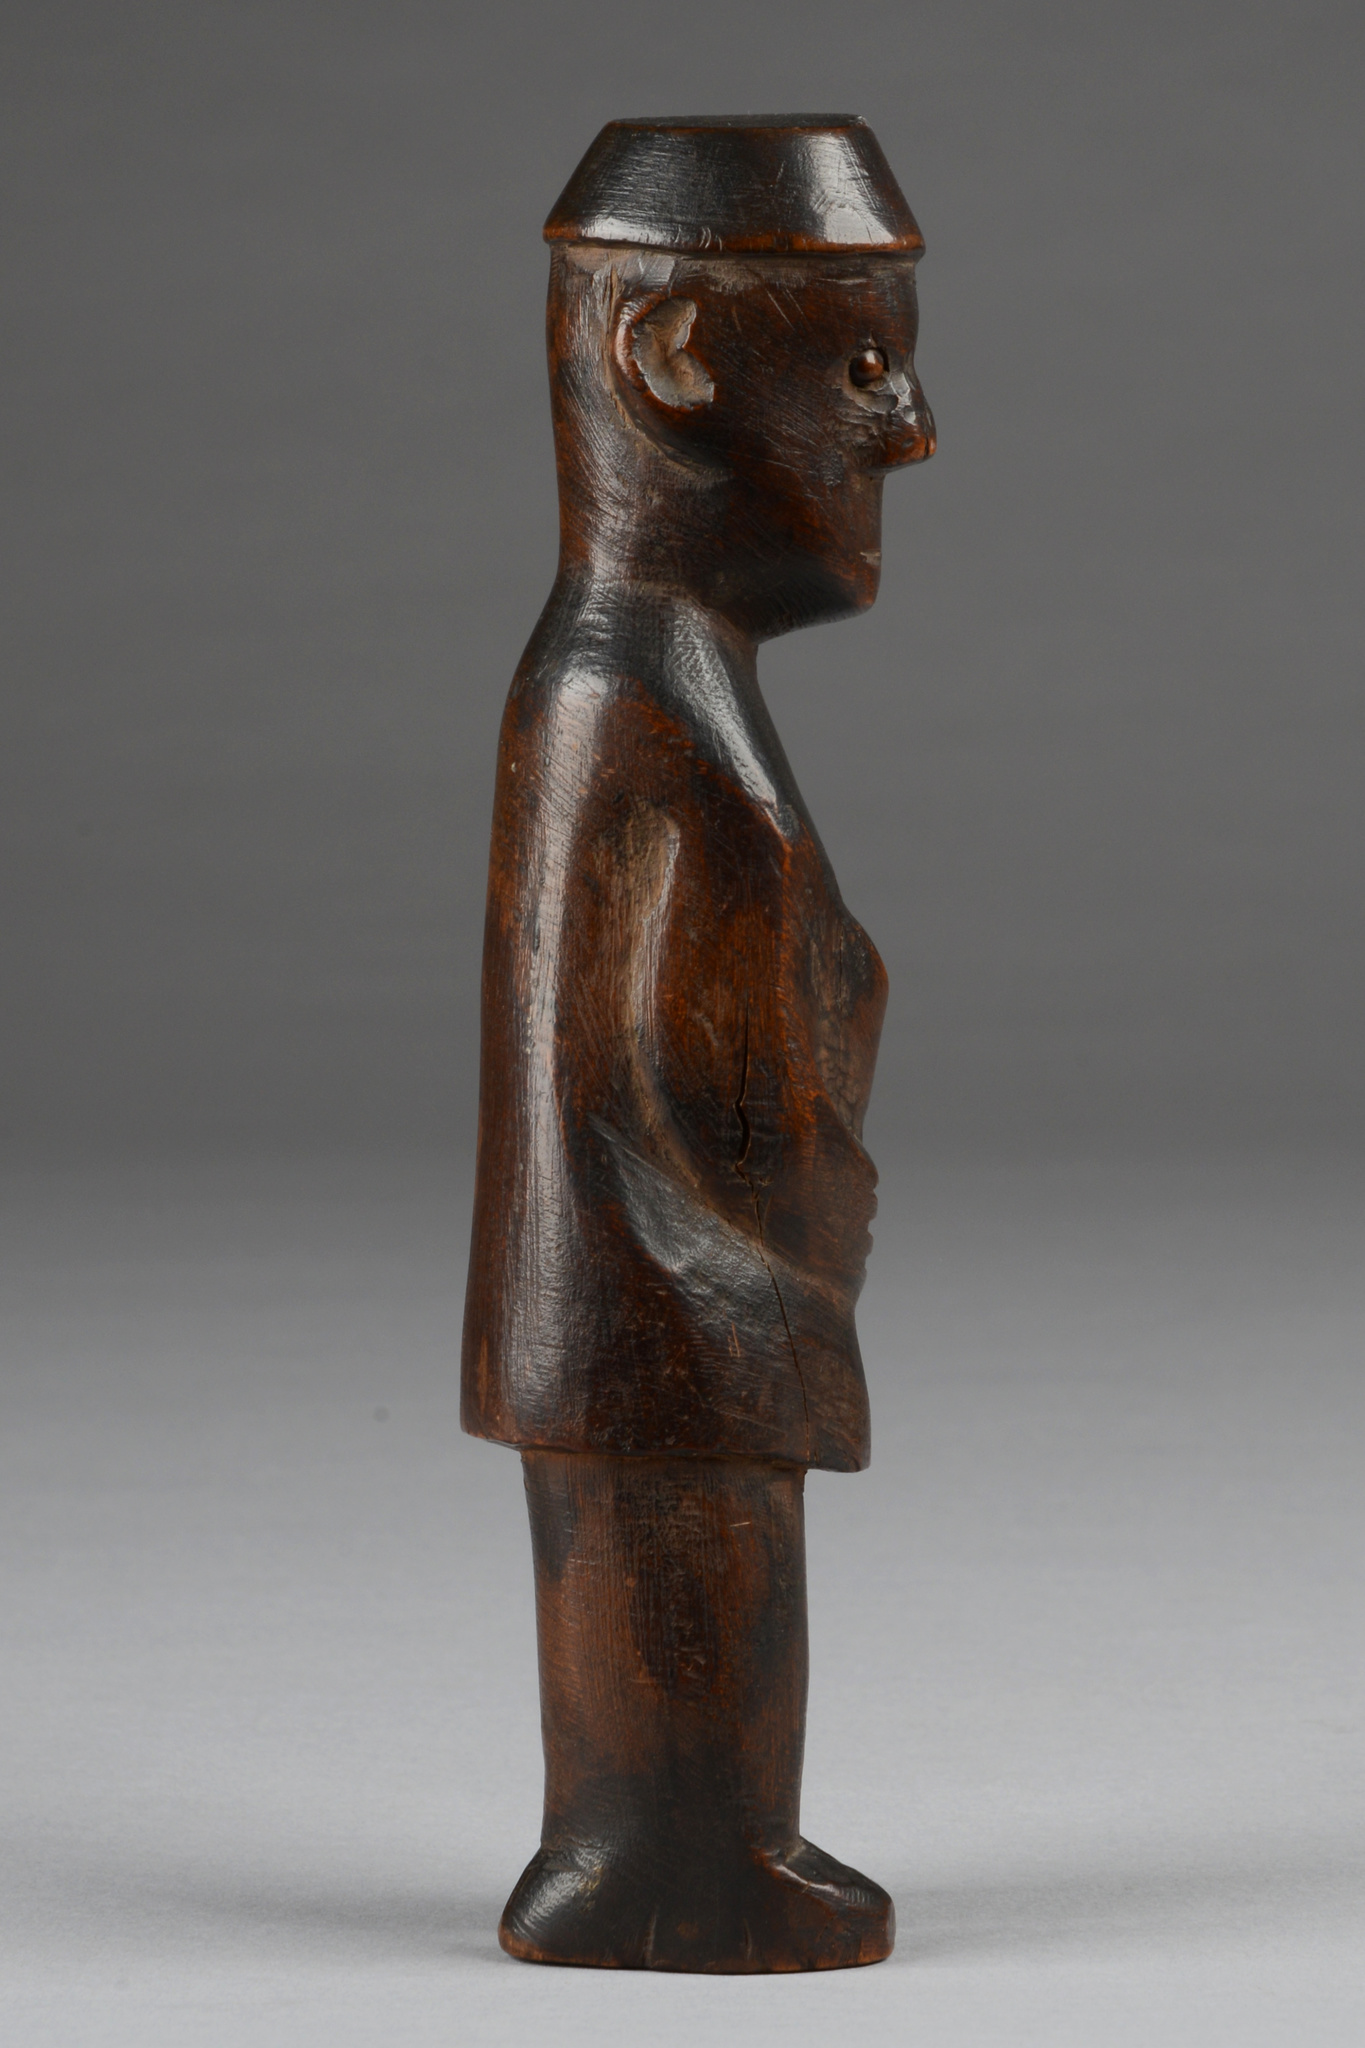 Figure with fez-like headdress